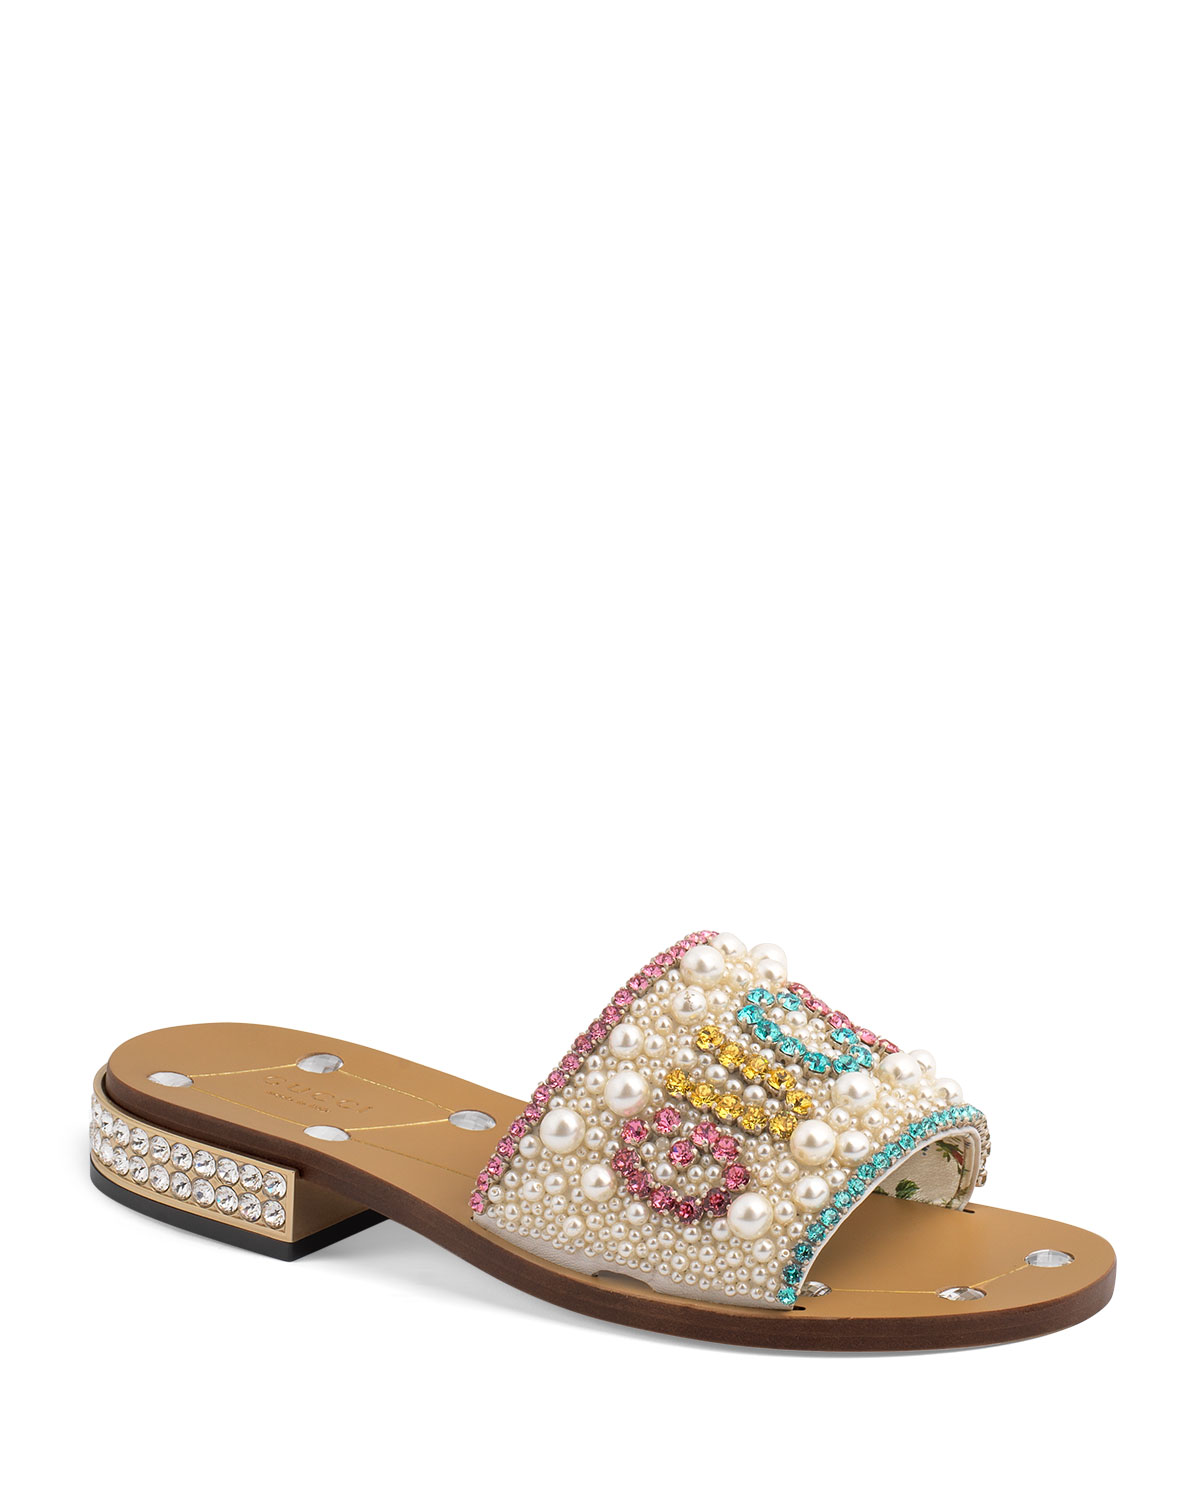 b52607b88 Gucci Lupe 20mm Guccy Jeweled Leather Slide | Neiman Marcus